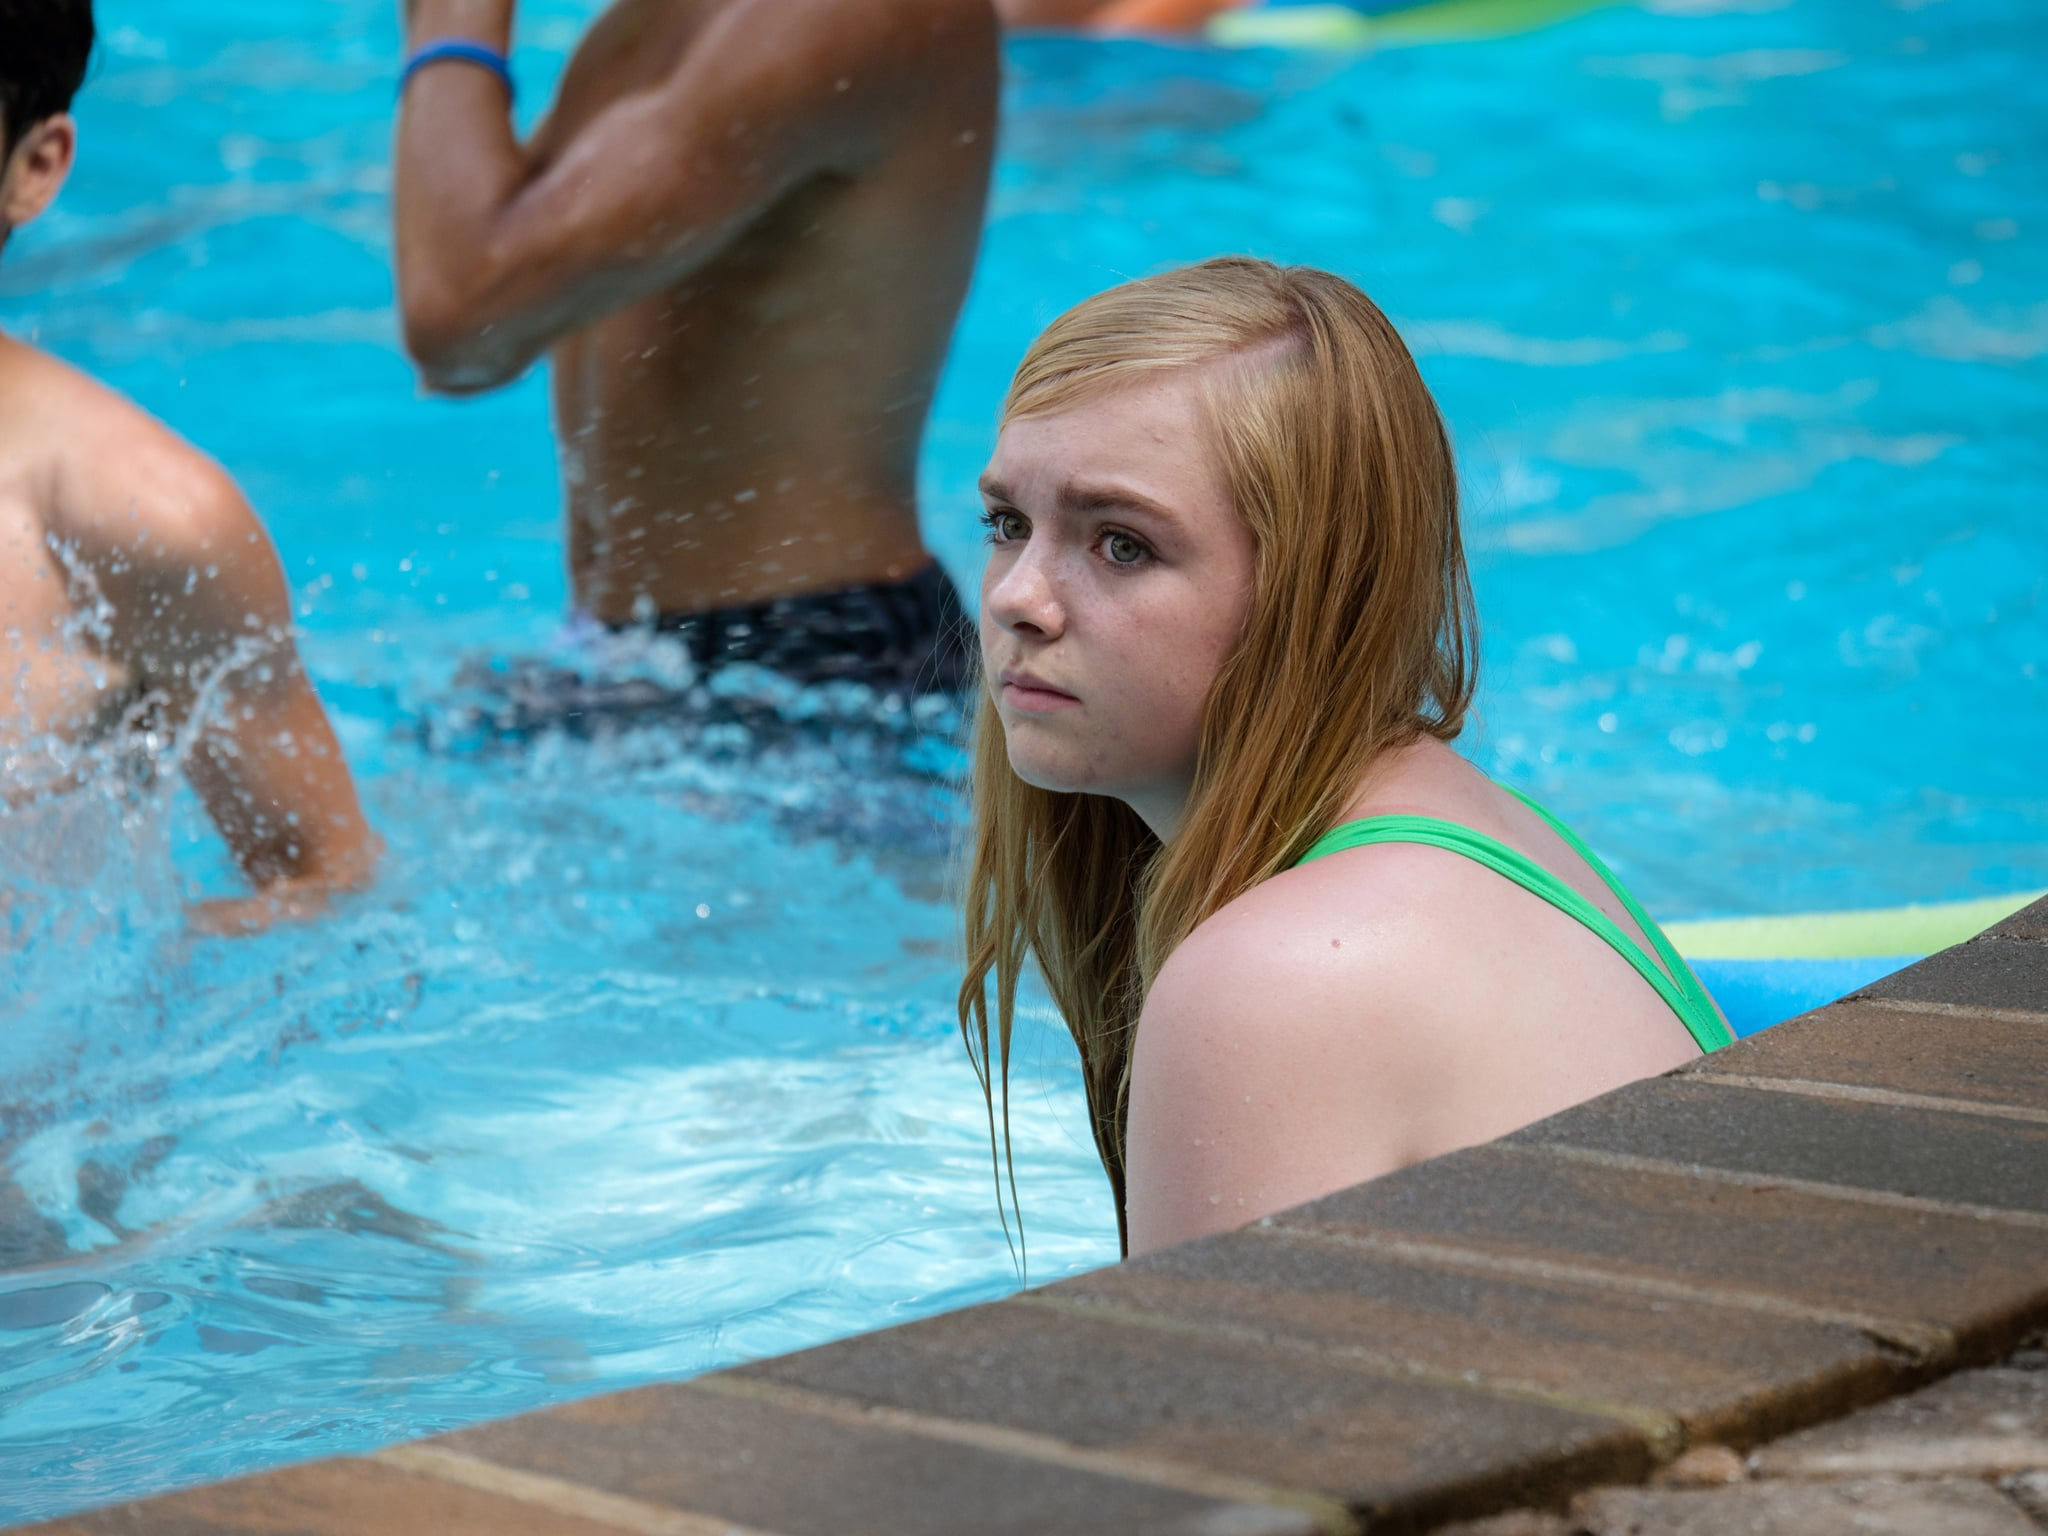 EIGHTH GRADE, Elsie Fisher, 2018. ph: Linda Kallerus. A24/courtesy Everett Collection